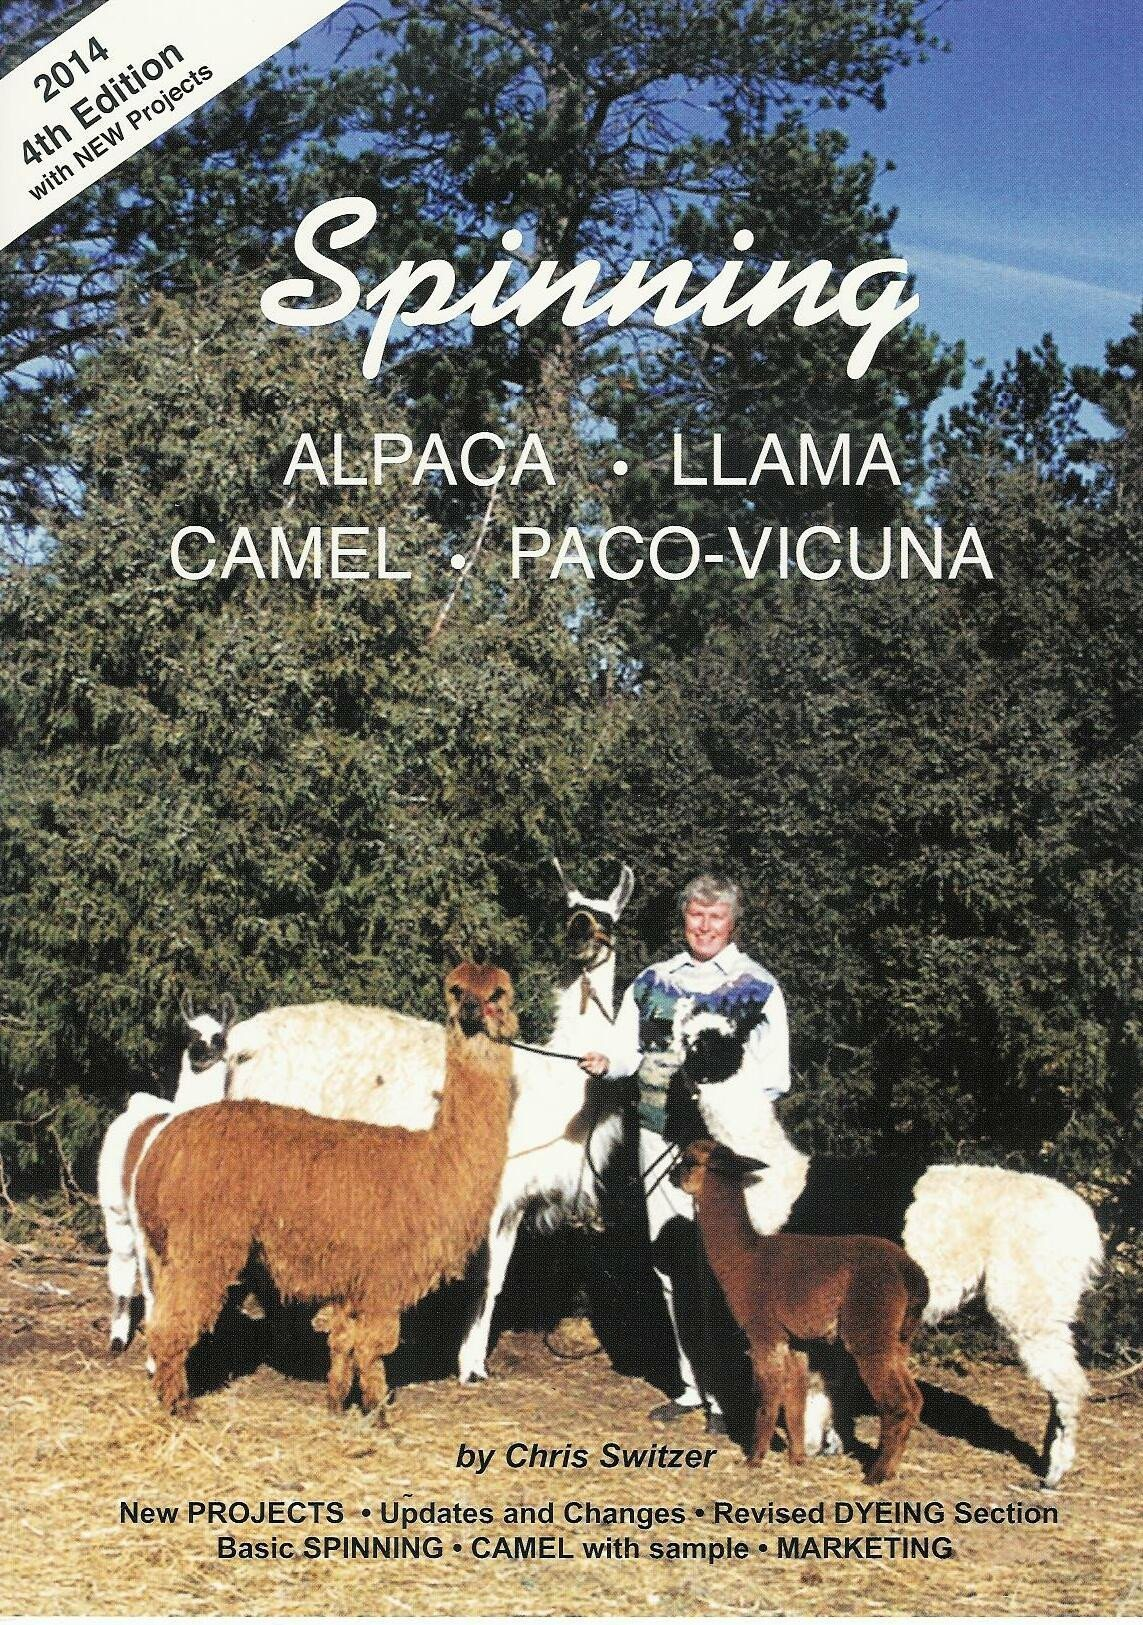 Spinning Alpaca, Llama, Camel and Paco-Vicuna 4th Edition